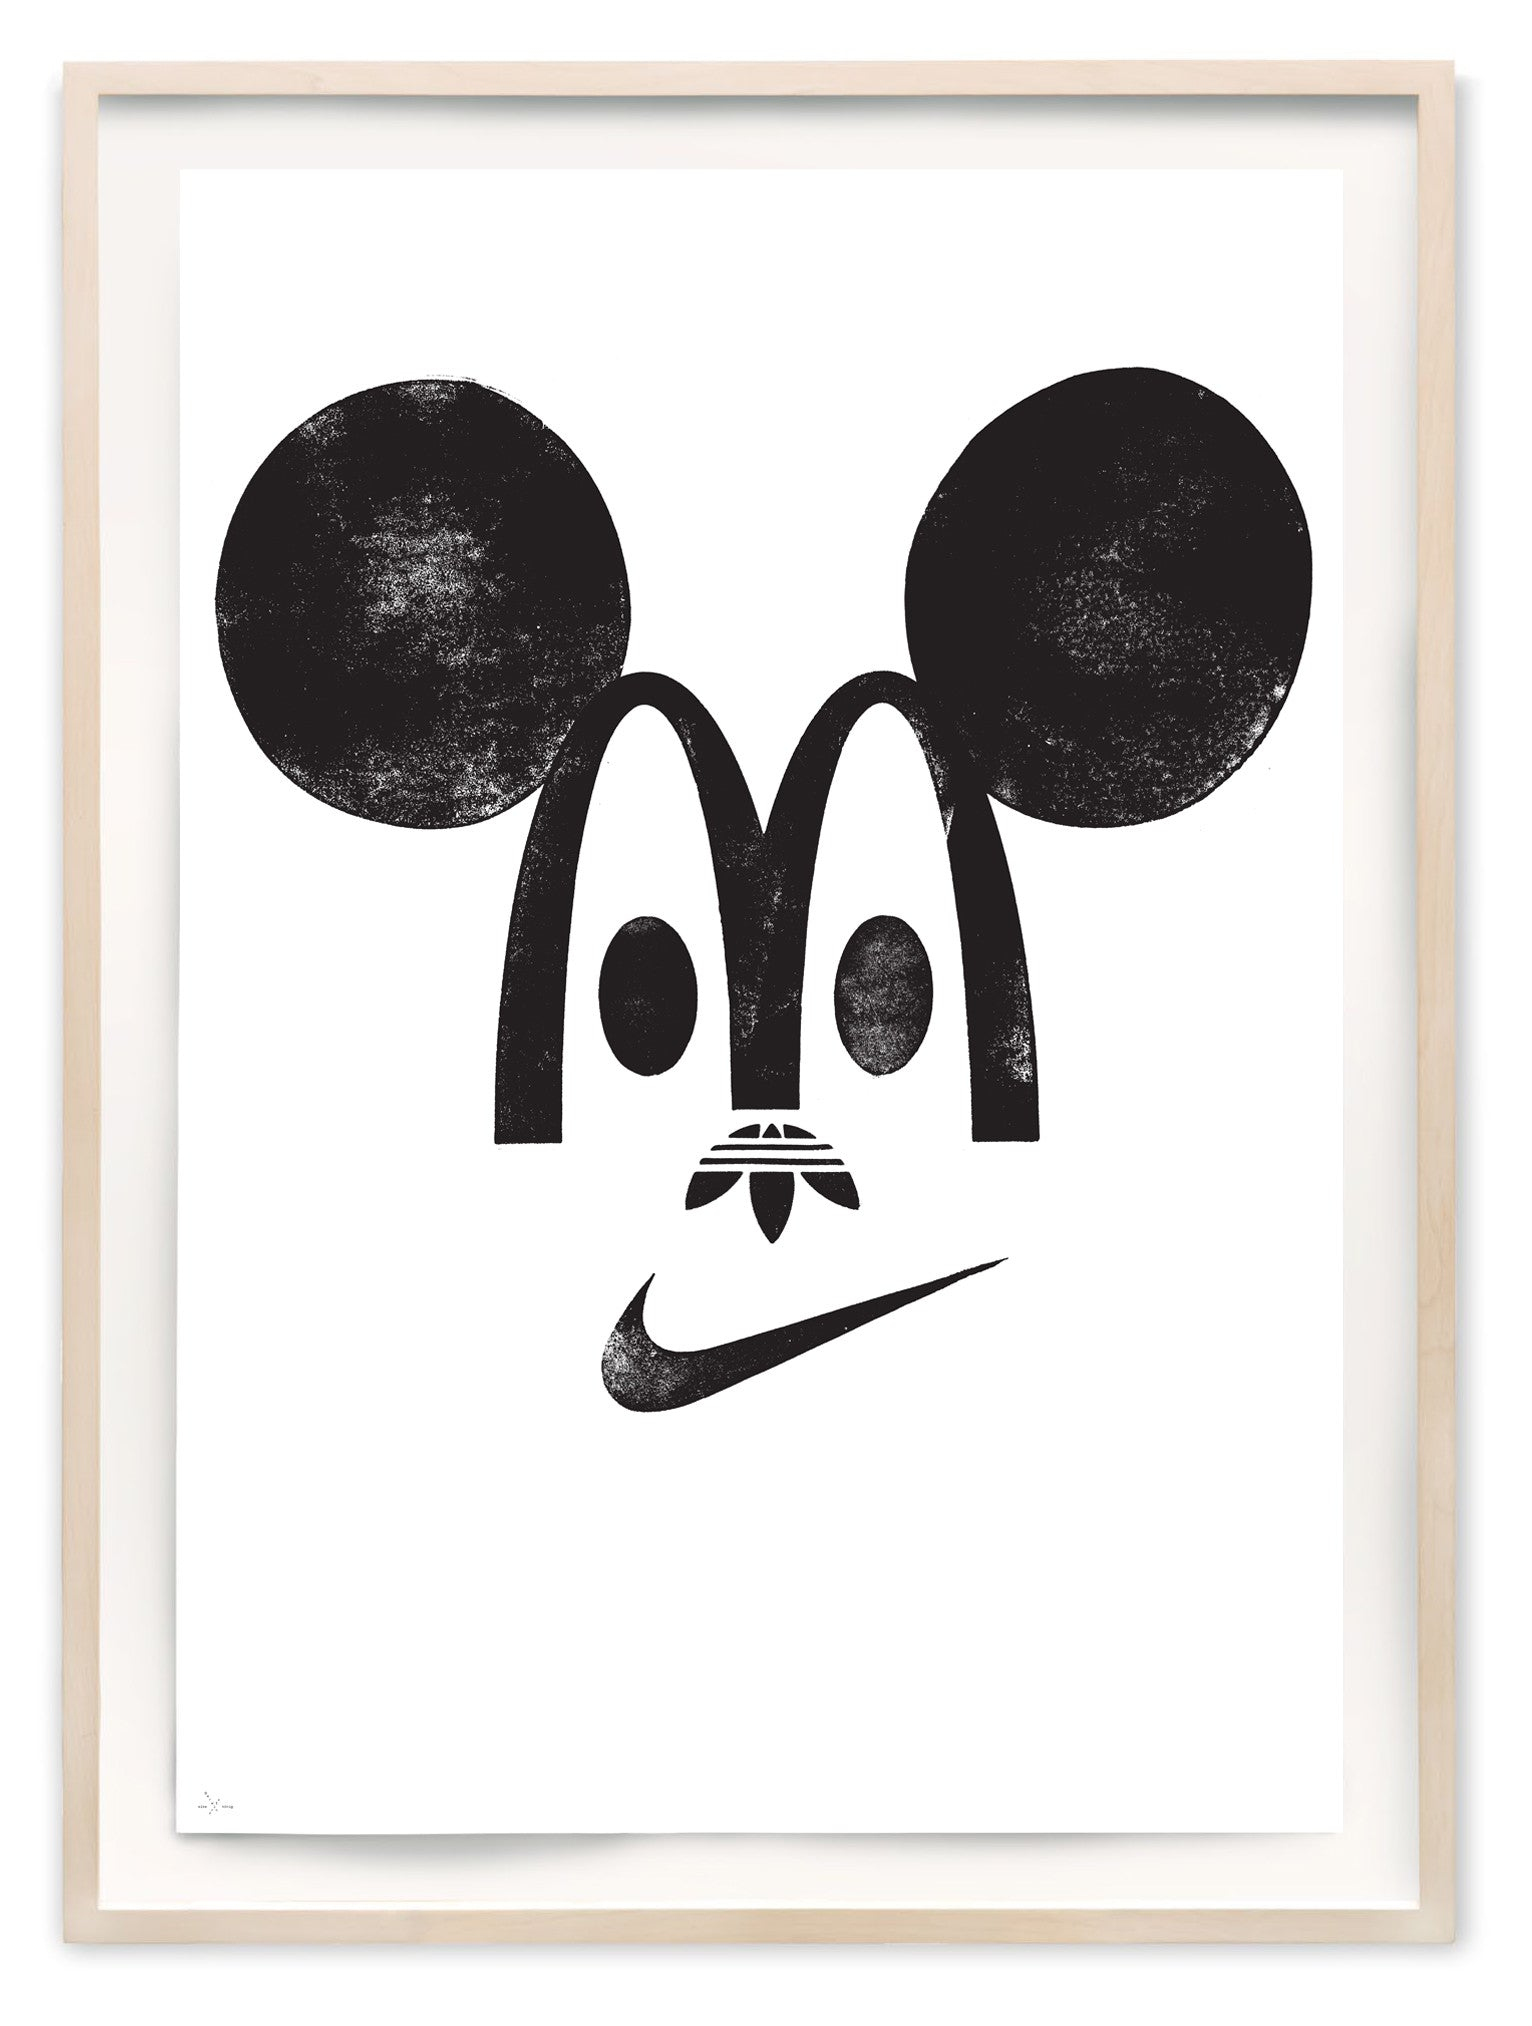 Happy Branding - Art Print by Eike König | Another Fine Mess